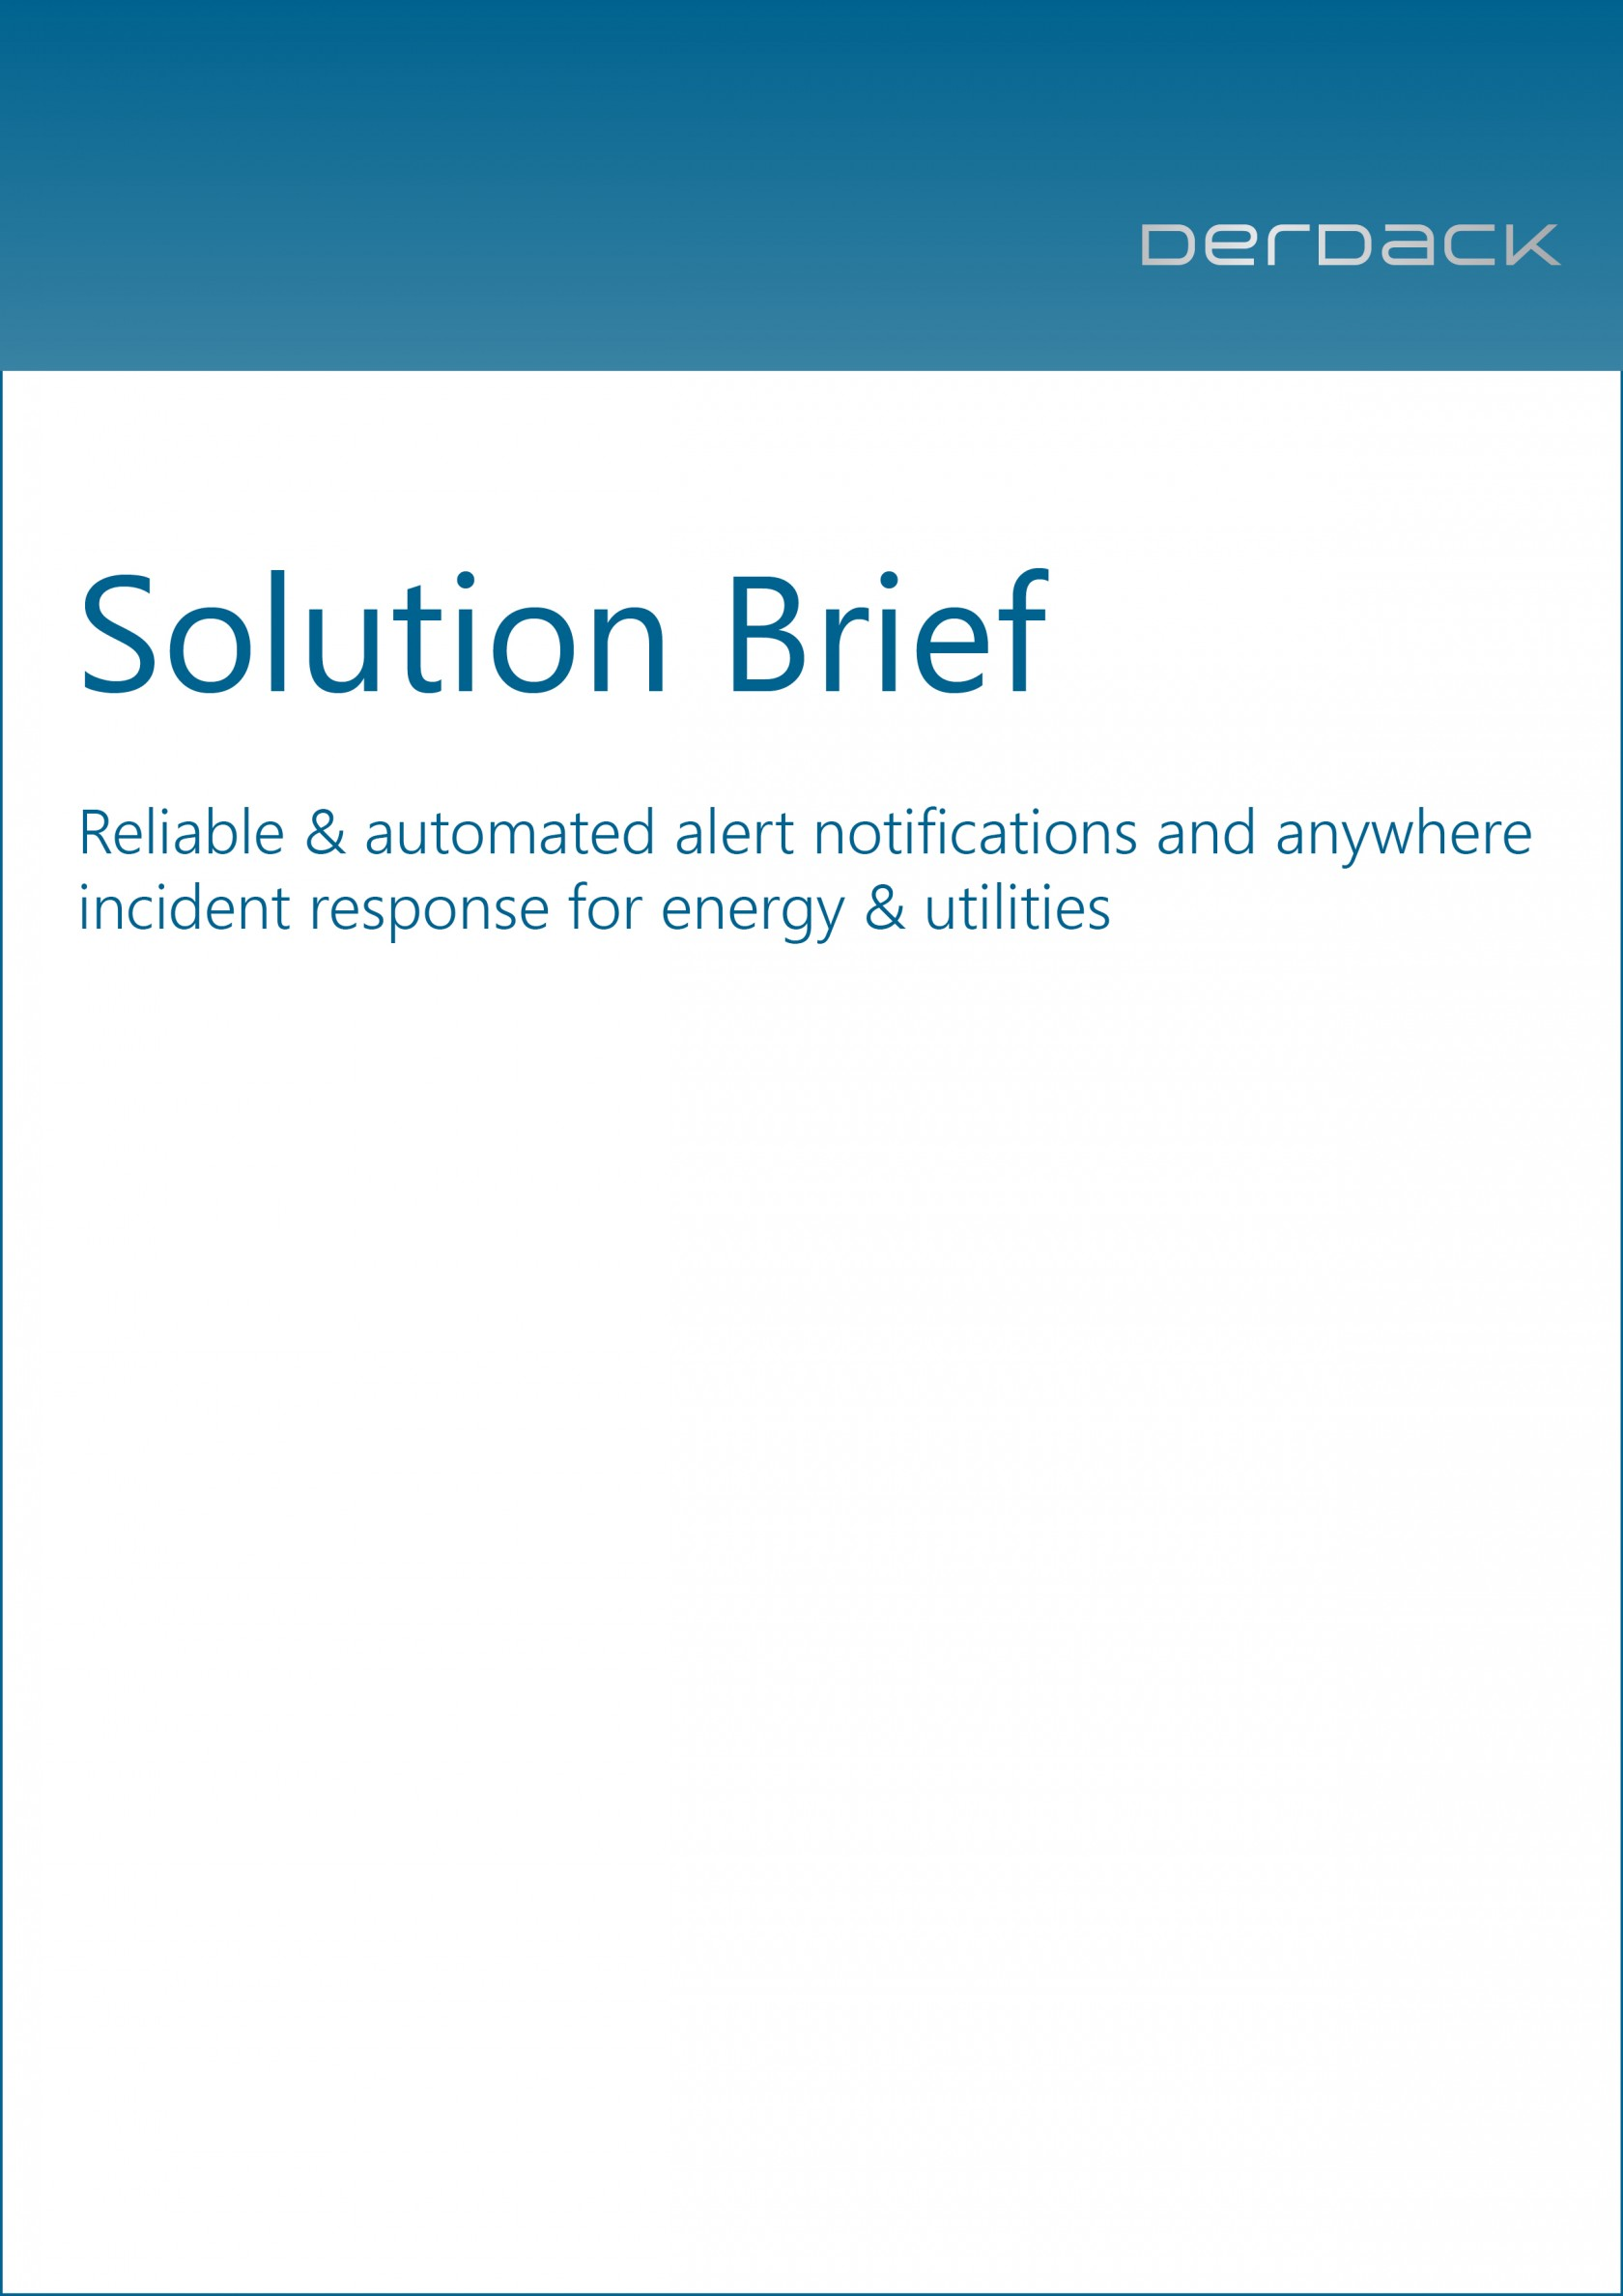 Solution Brief - Energy & Utilities